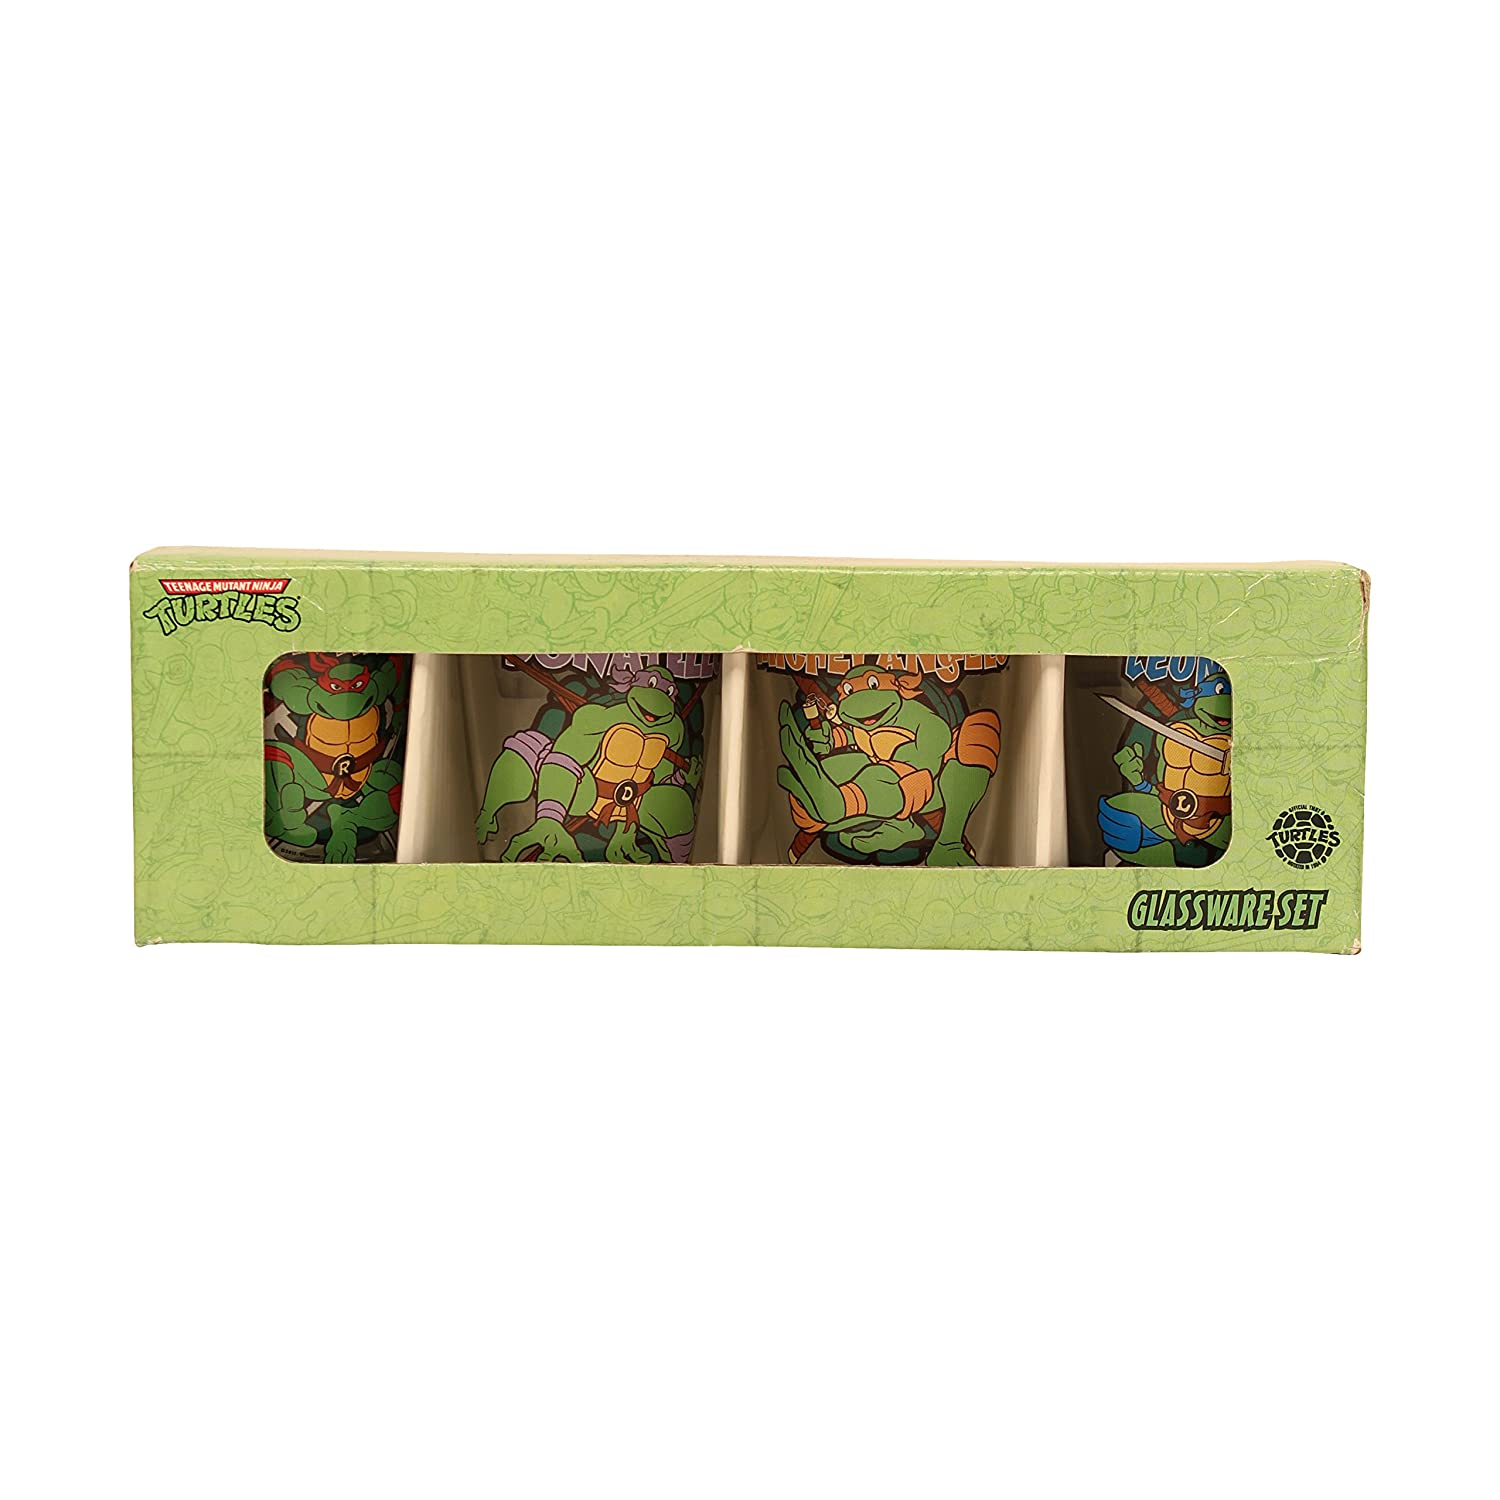 Silver Buffalo NT031SG8 Nickelodeon Teenage Mutant Ninja Turtles Character and Names Mini Glass Set, 4-Pack